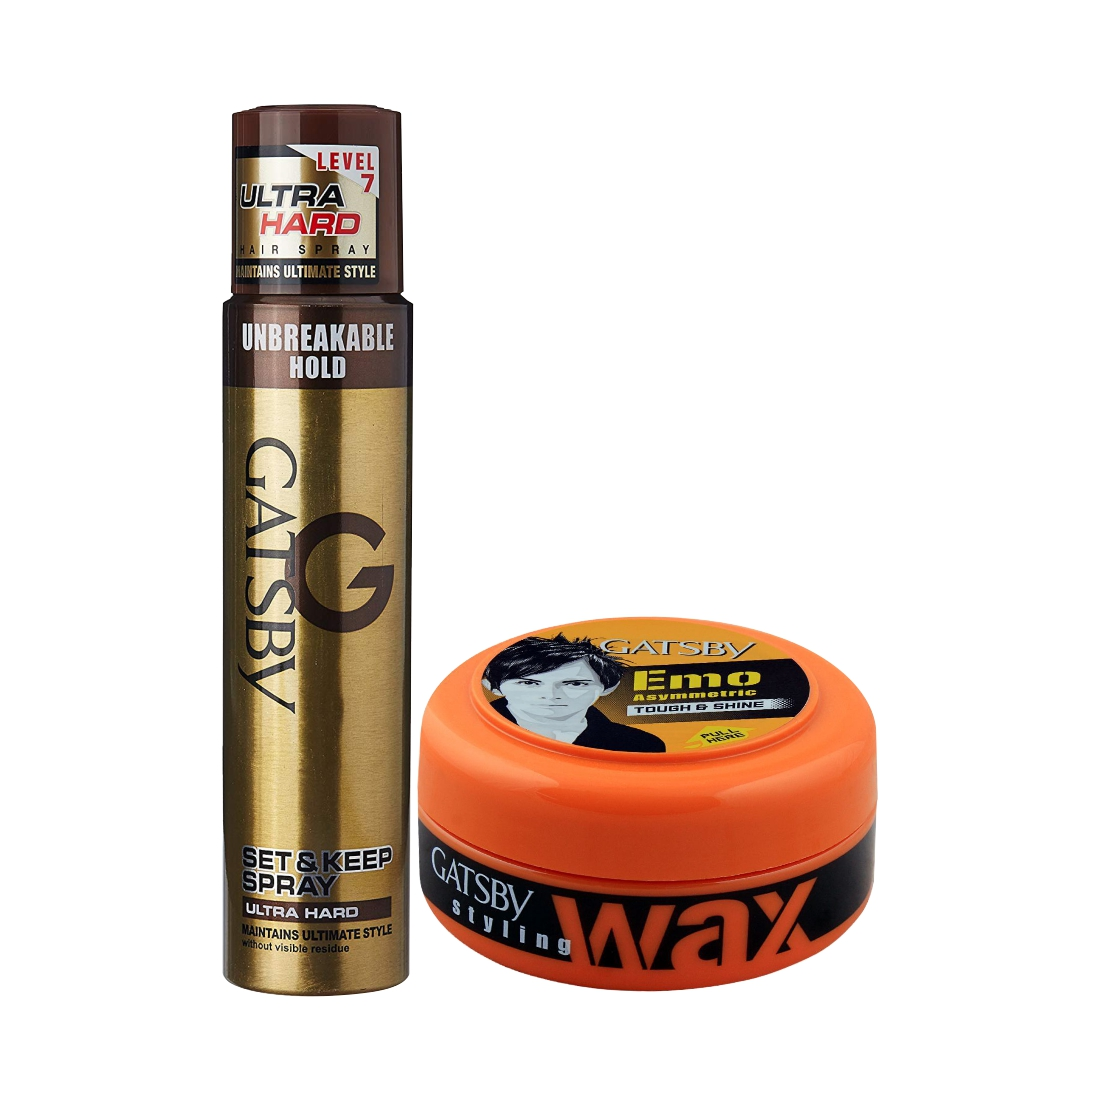 Gatsby Ultra Hard Spray And Tough N Shine Wax Pack Of 2